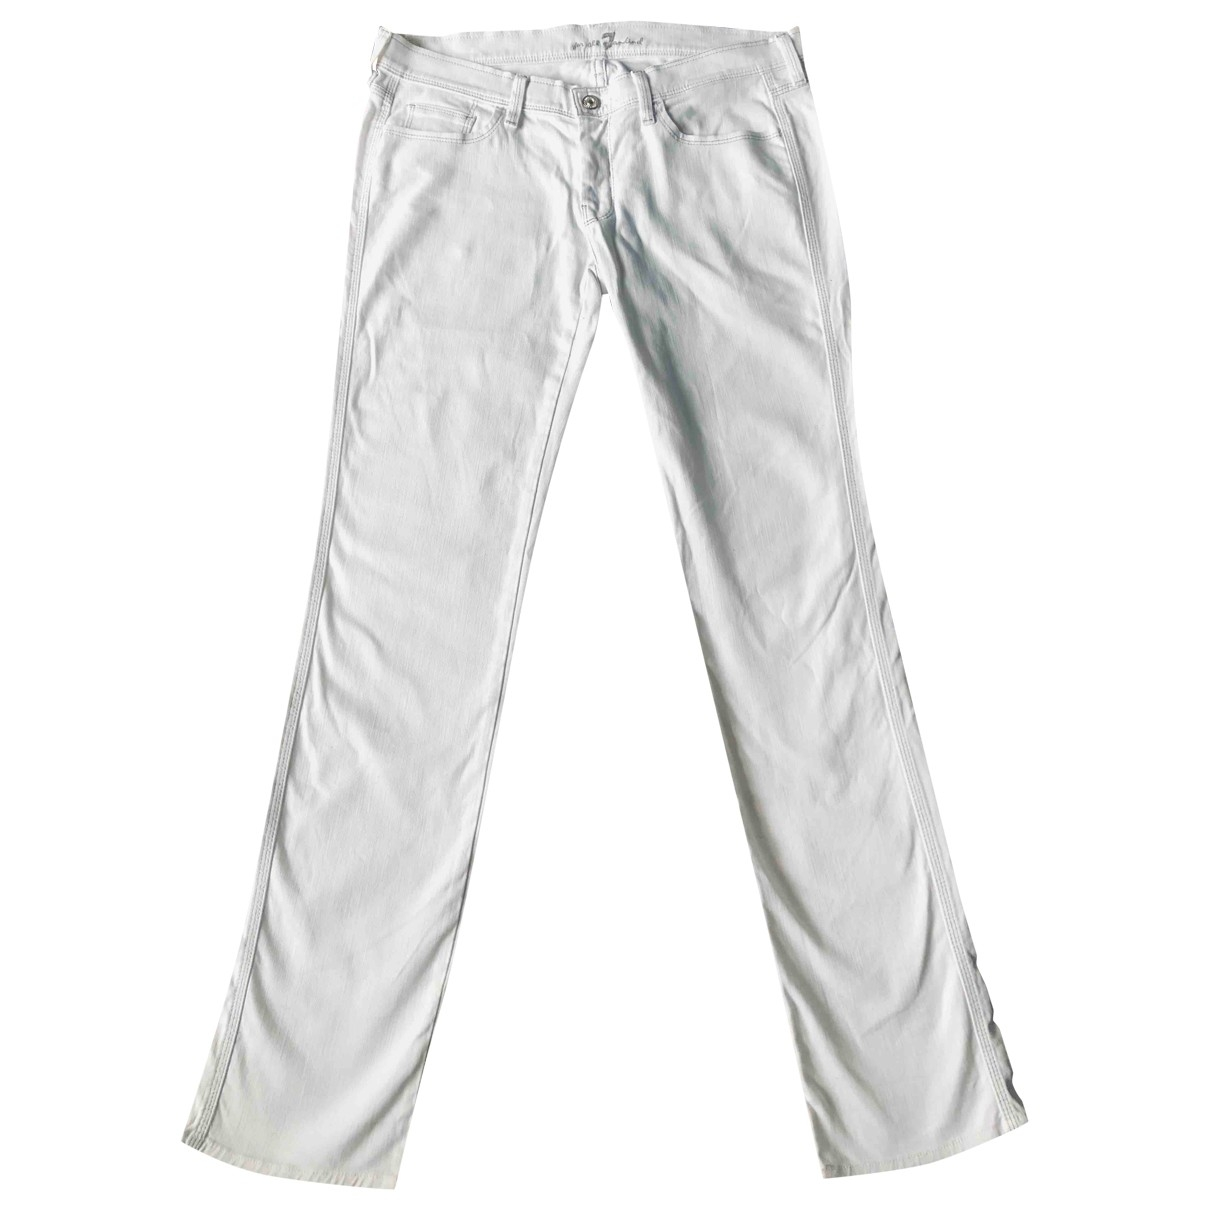 7 For All Mankind \N White Cotton Jeans for Women 31 US